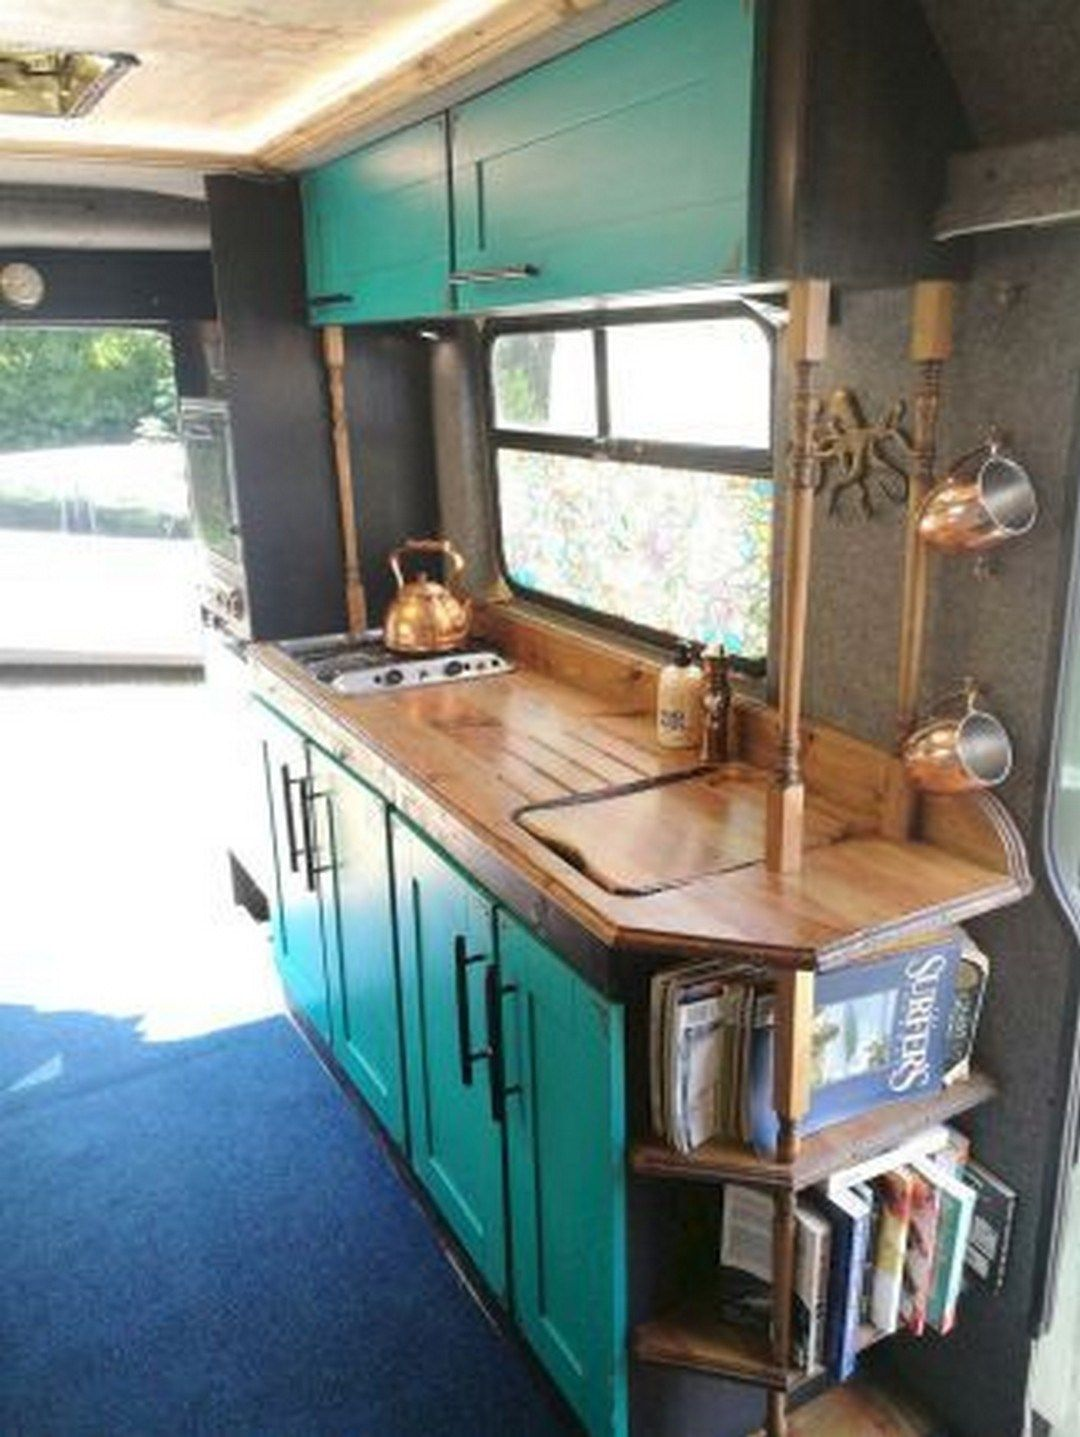 Best Sprinter Van Conversion Interior Design 55